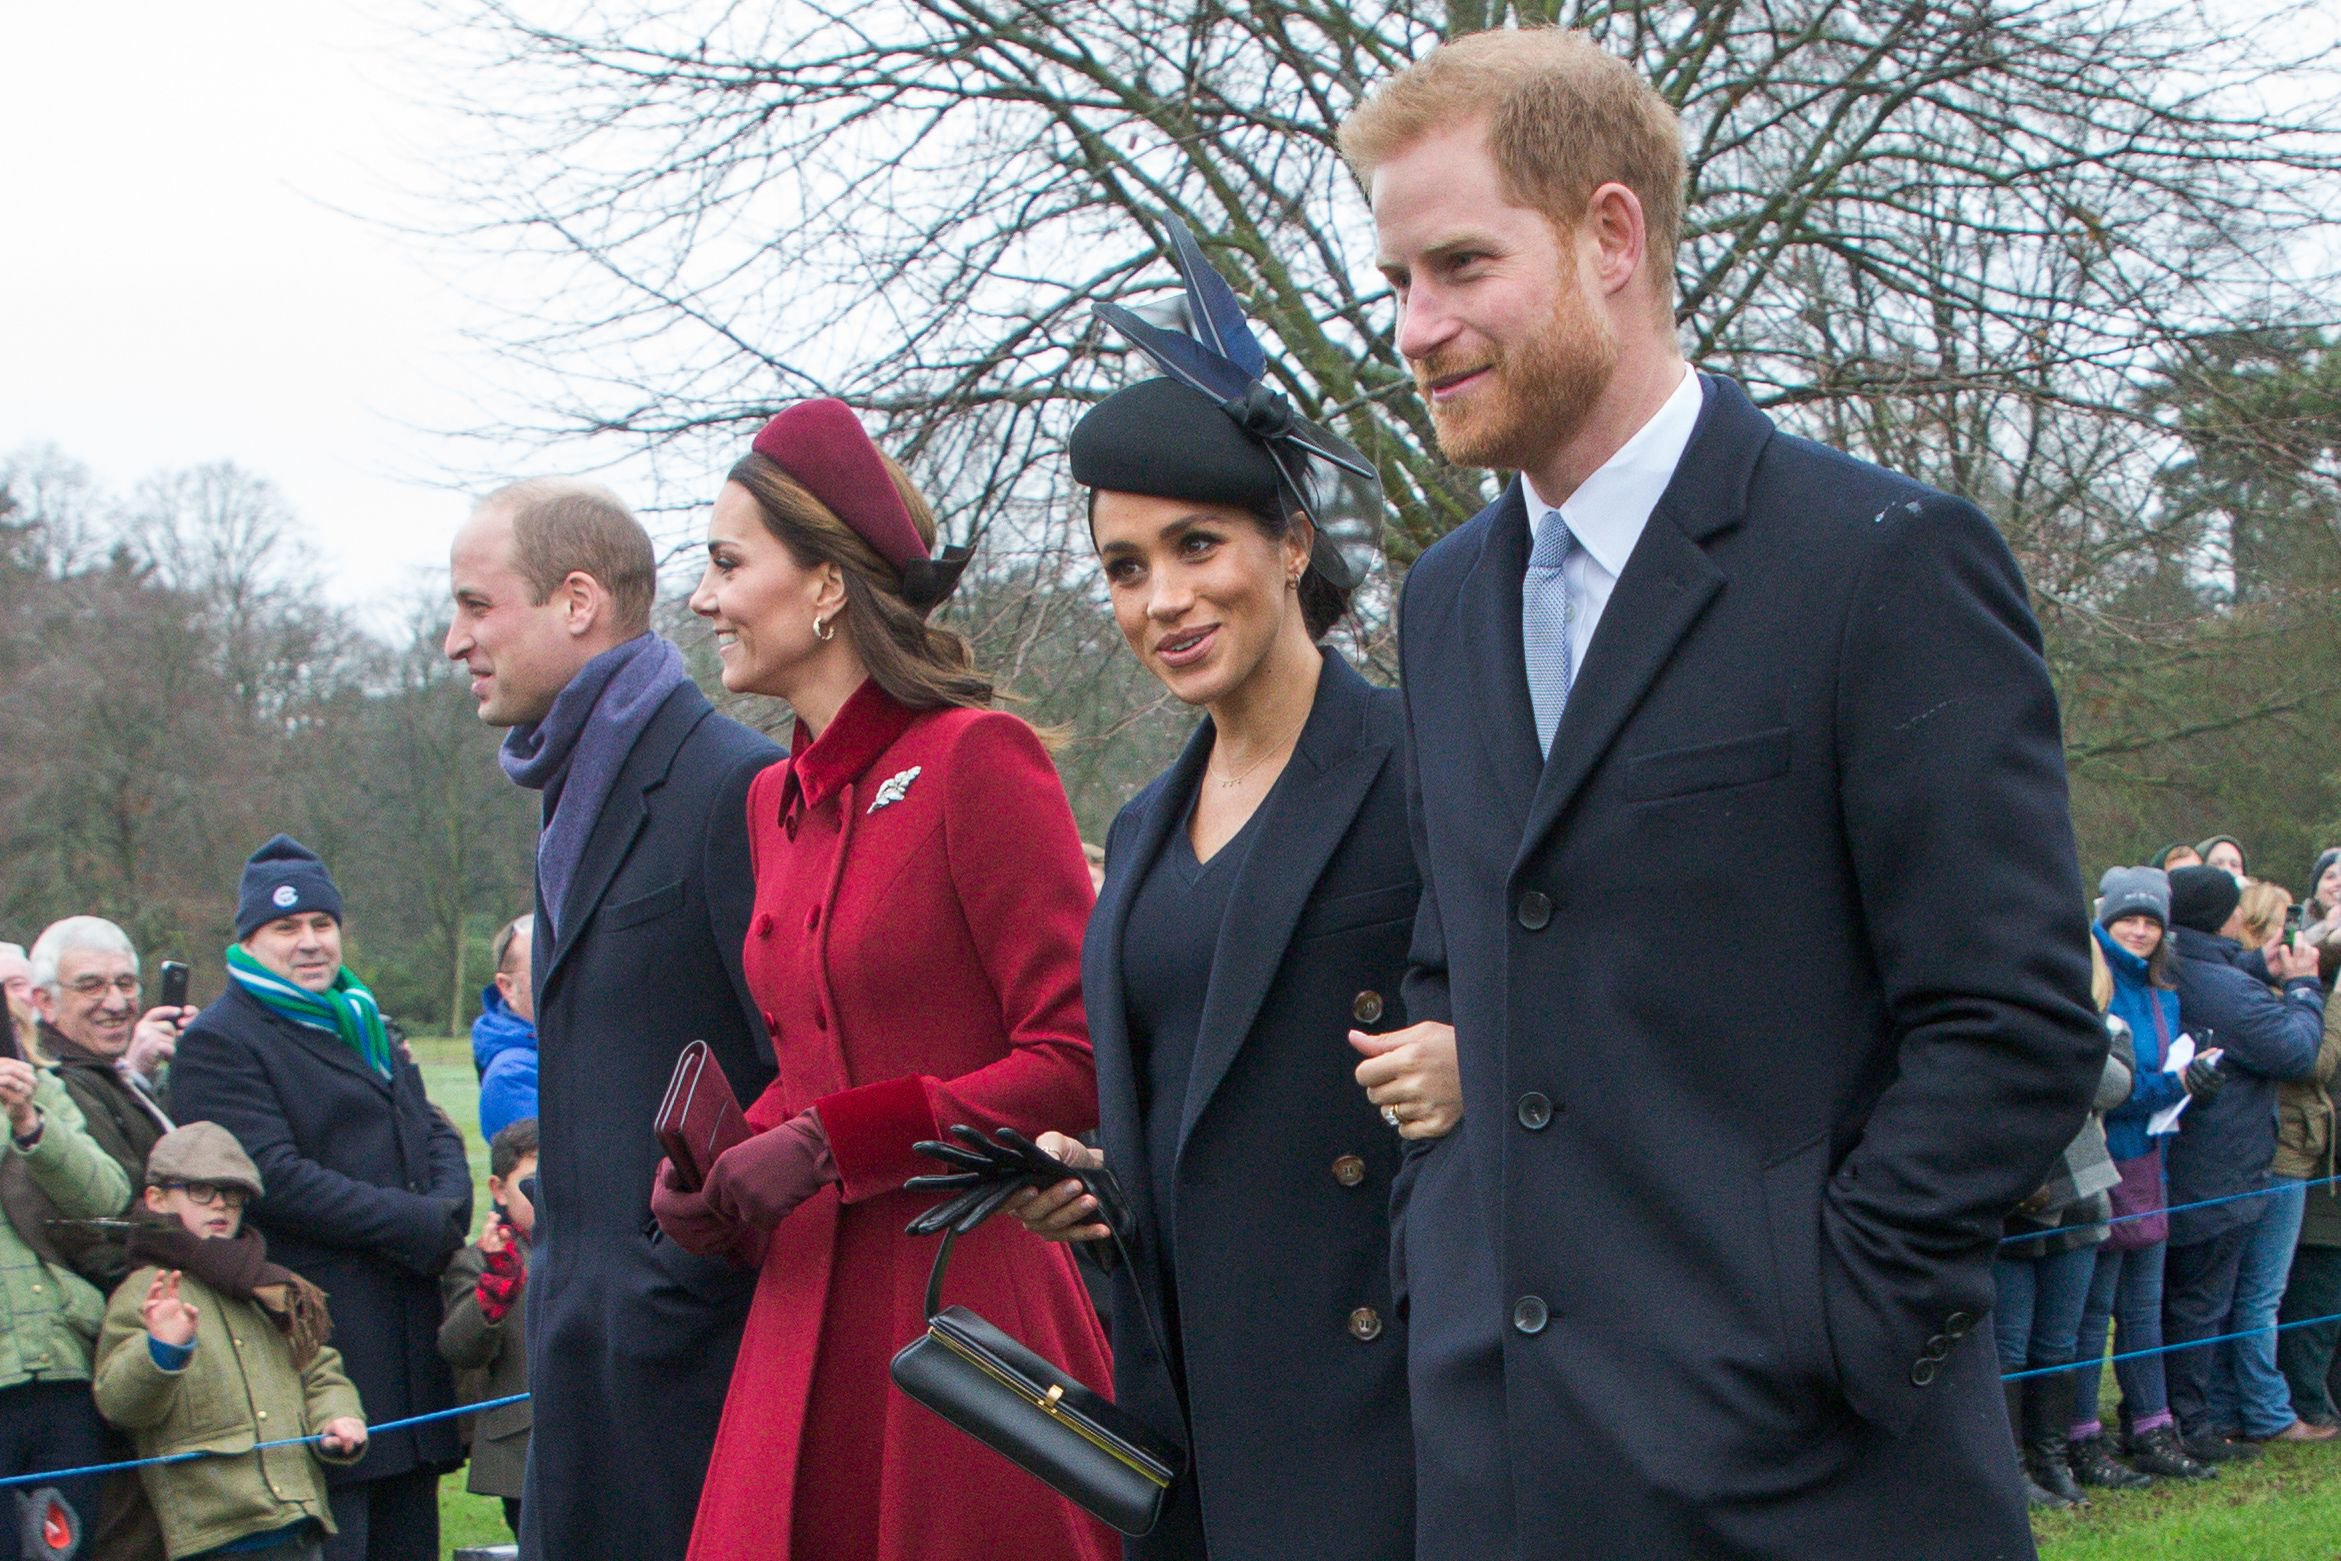 Who are the royal baby's royal cousins – and what about his American relations from Meghan Markle's estranged family?